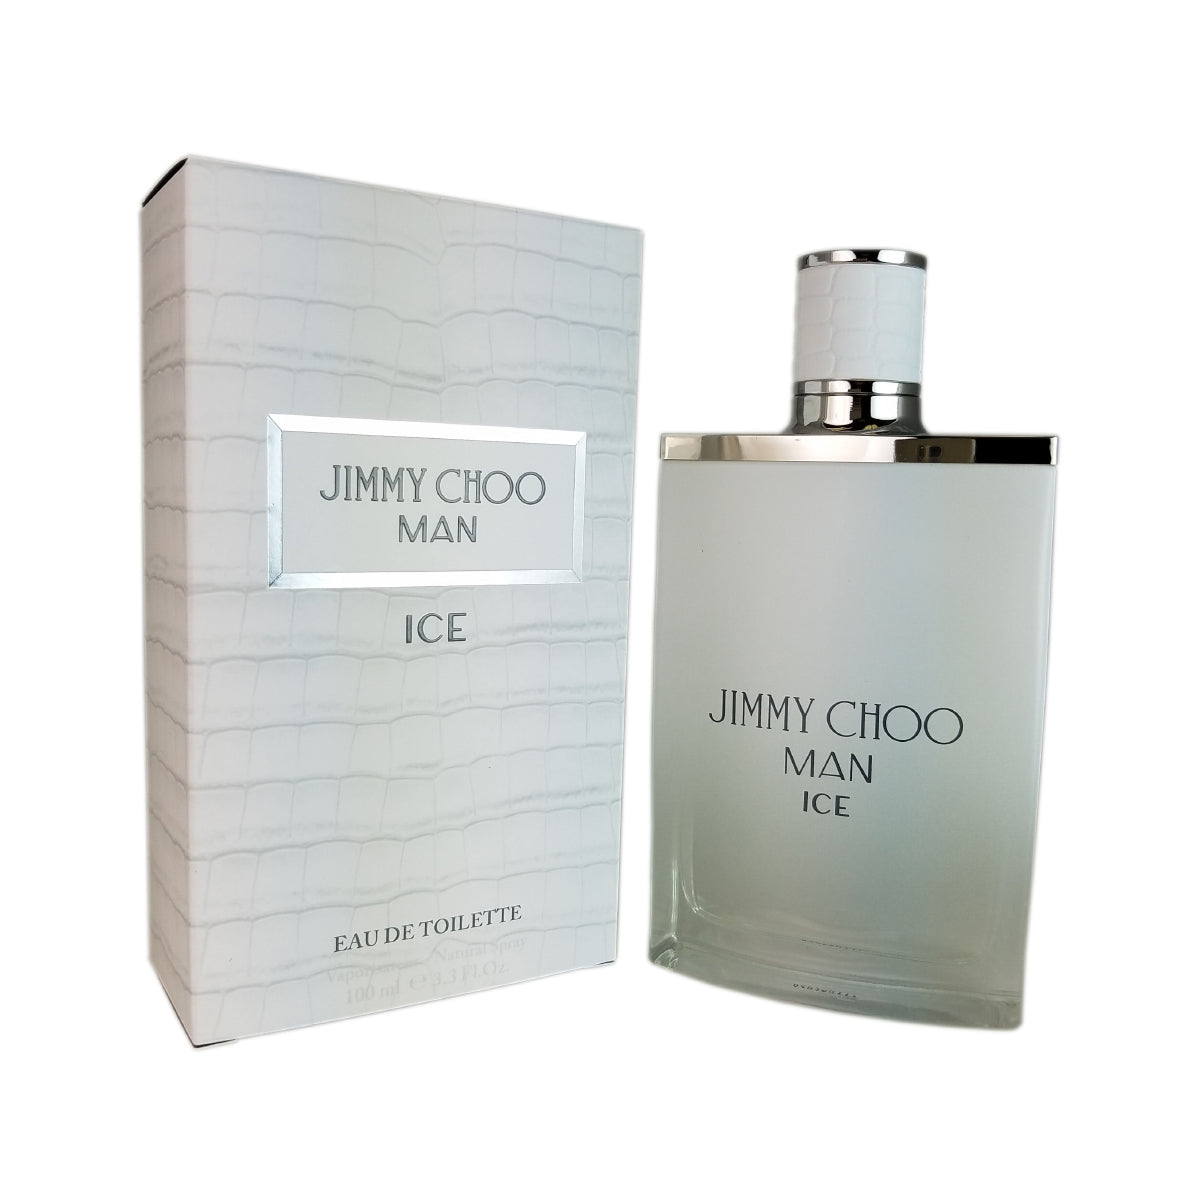 Jimmy Choo Man Ice for Men by Jimmy Choo 3.3 oz Eau De Toilette Spray